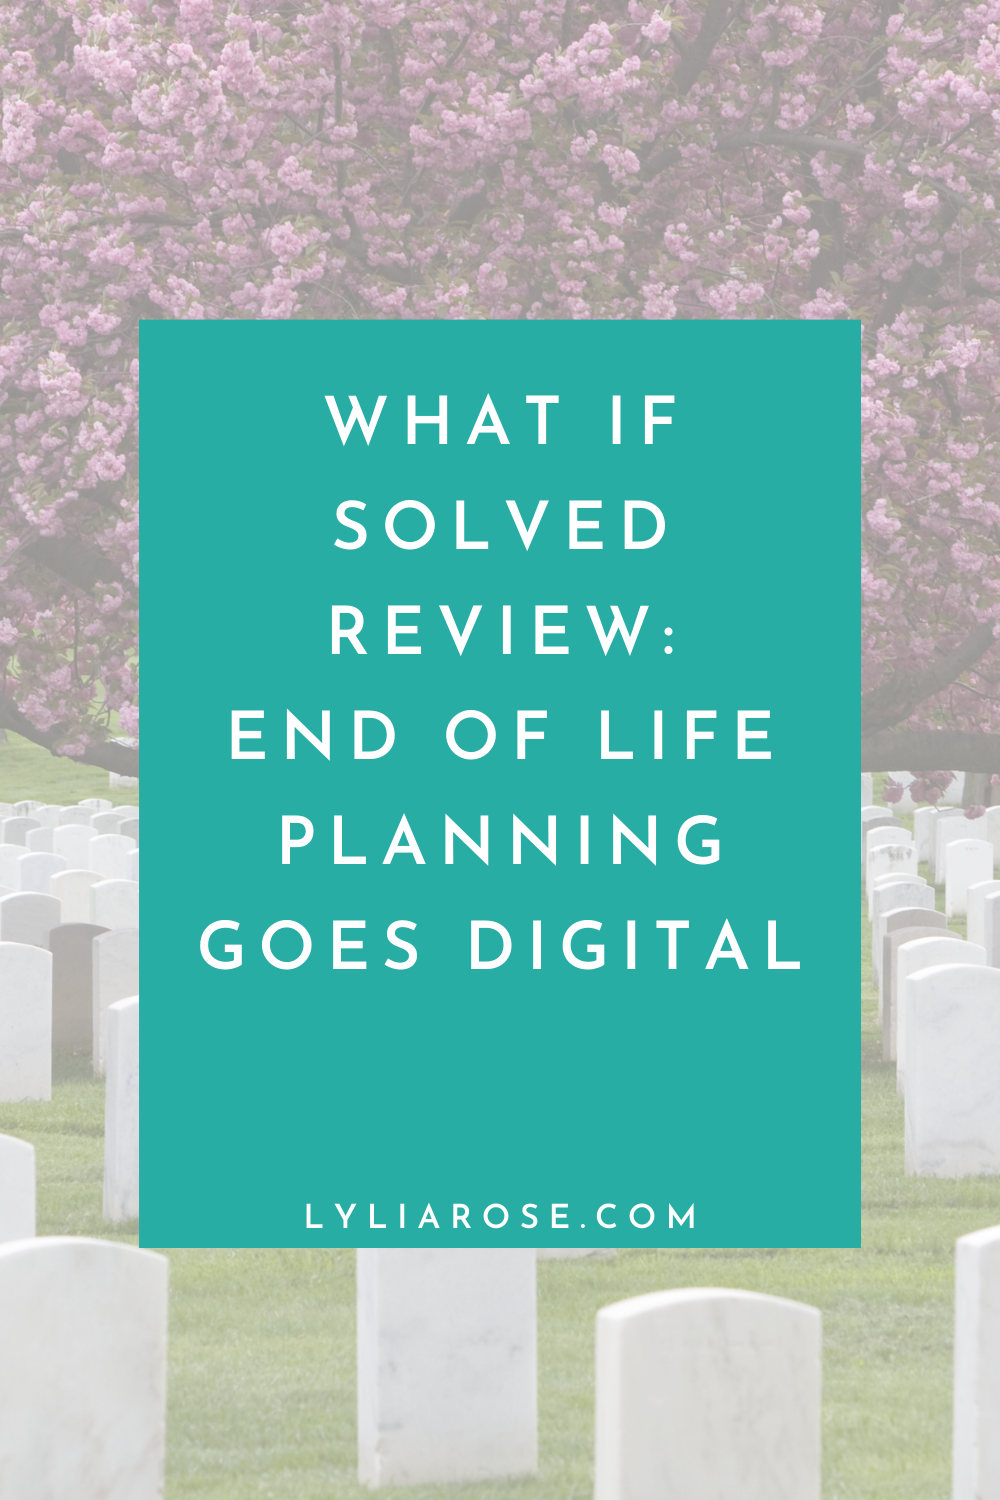 What If Solved review: end of life planning goes digital